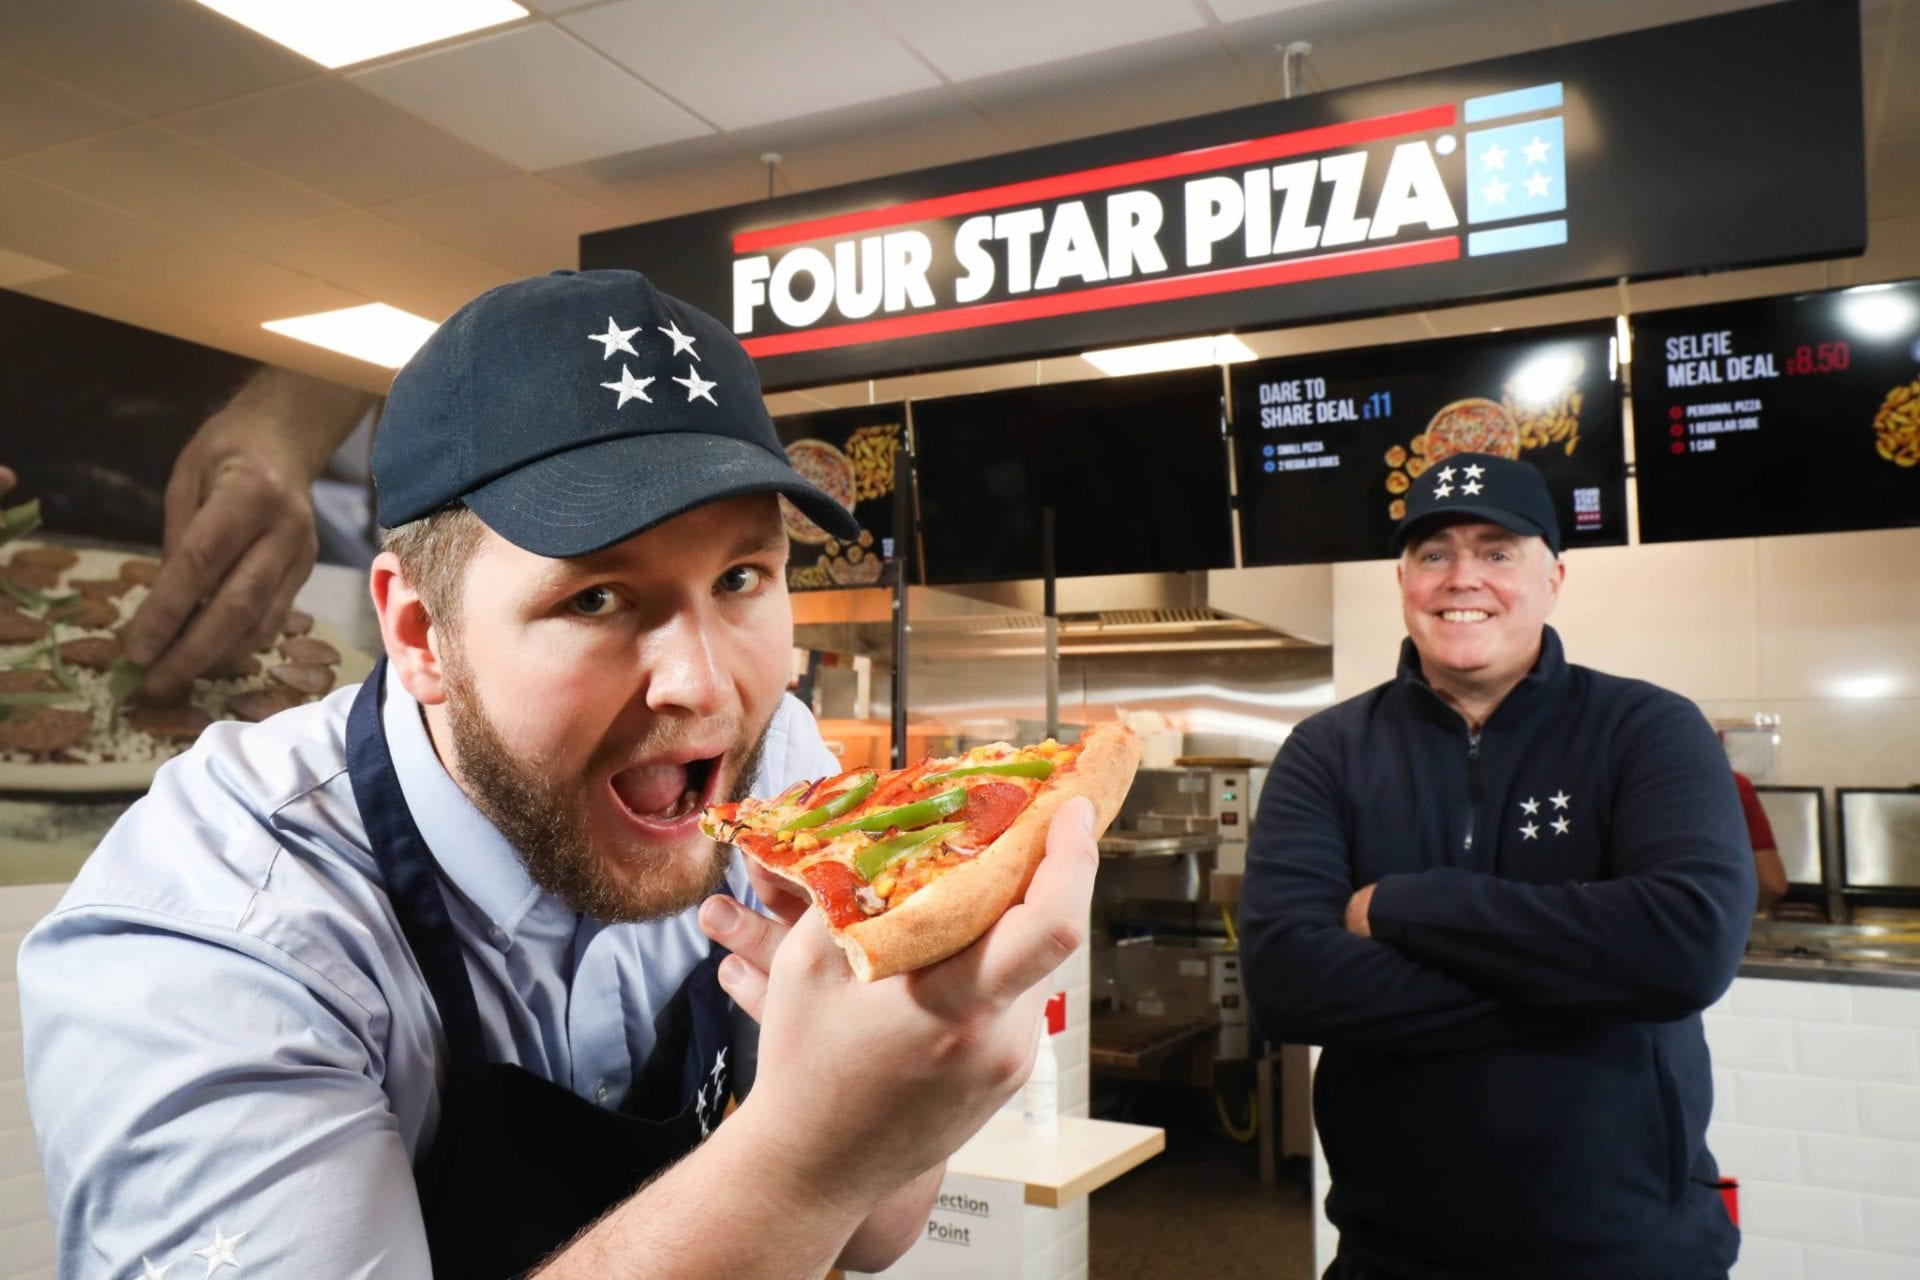 Four Star Pizza Craigavon